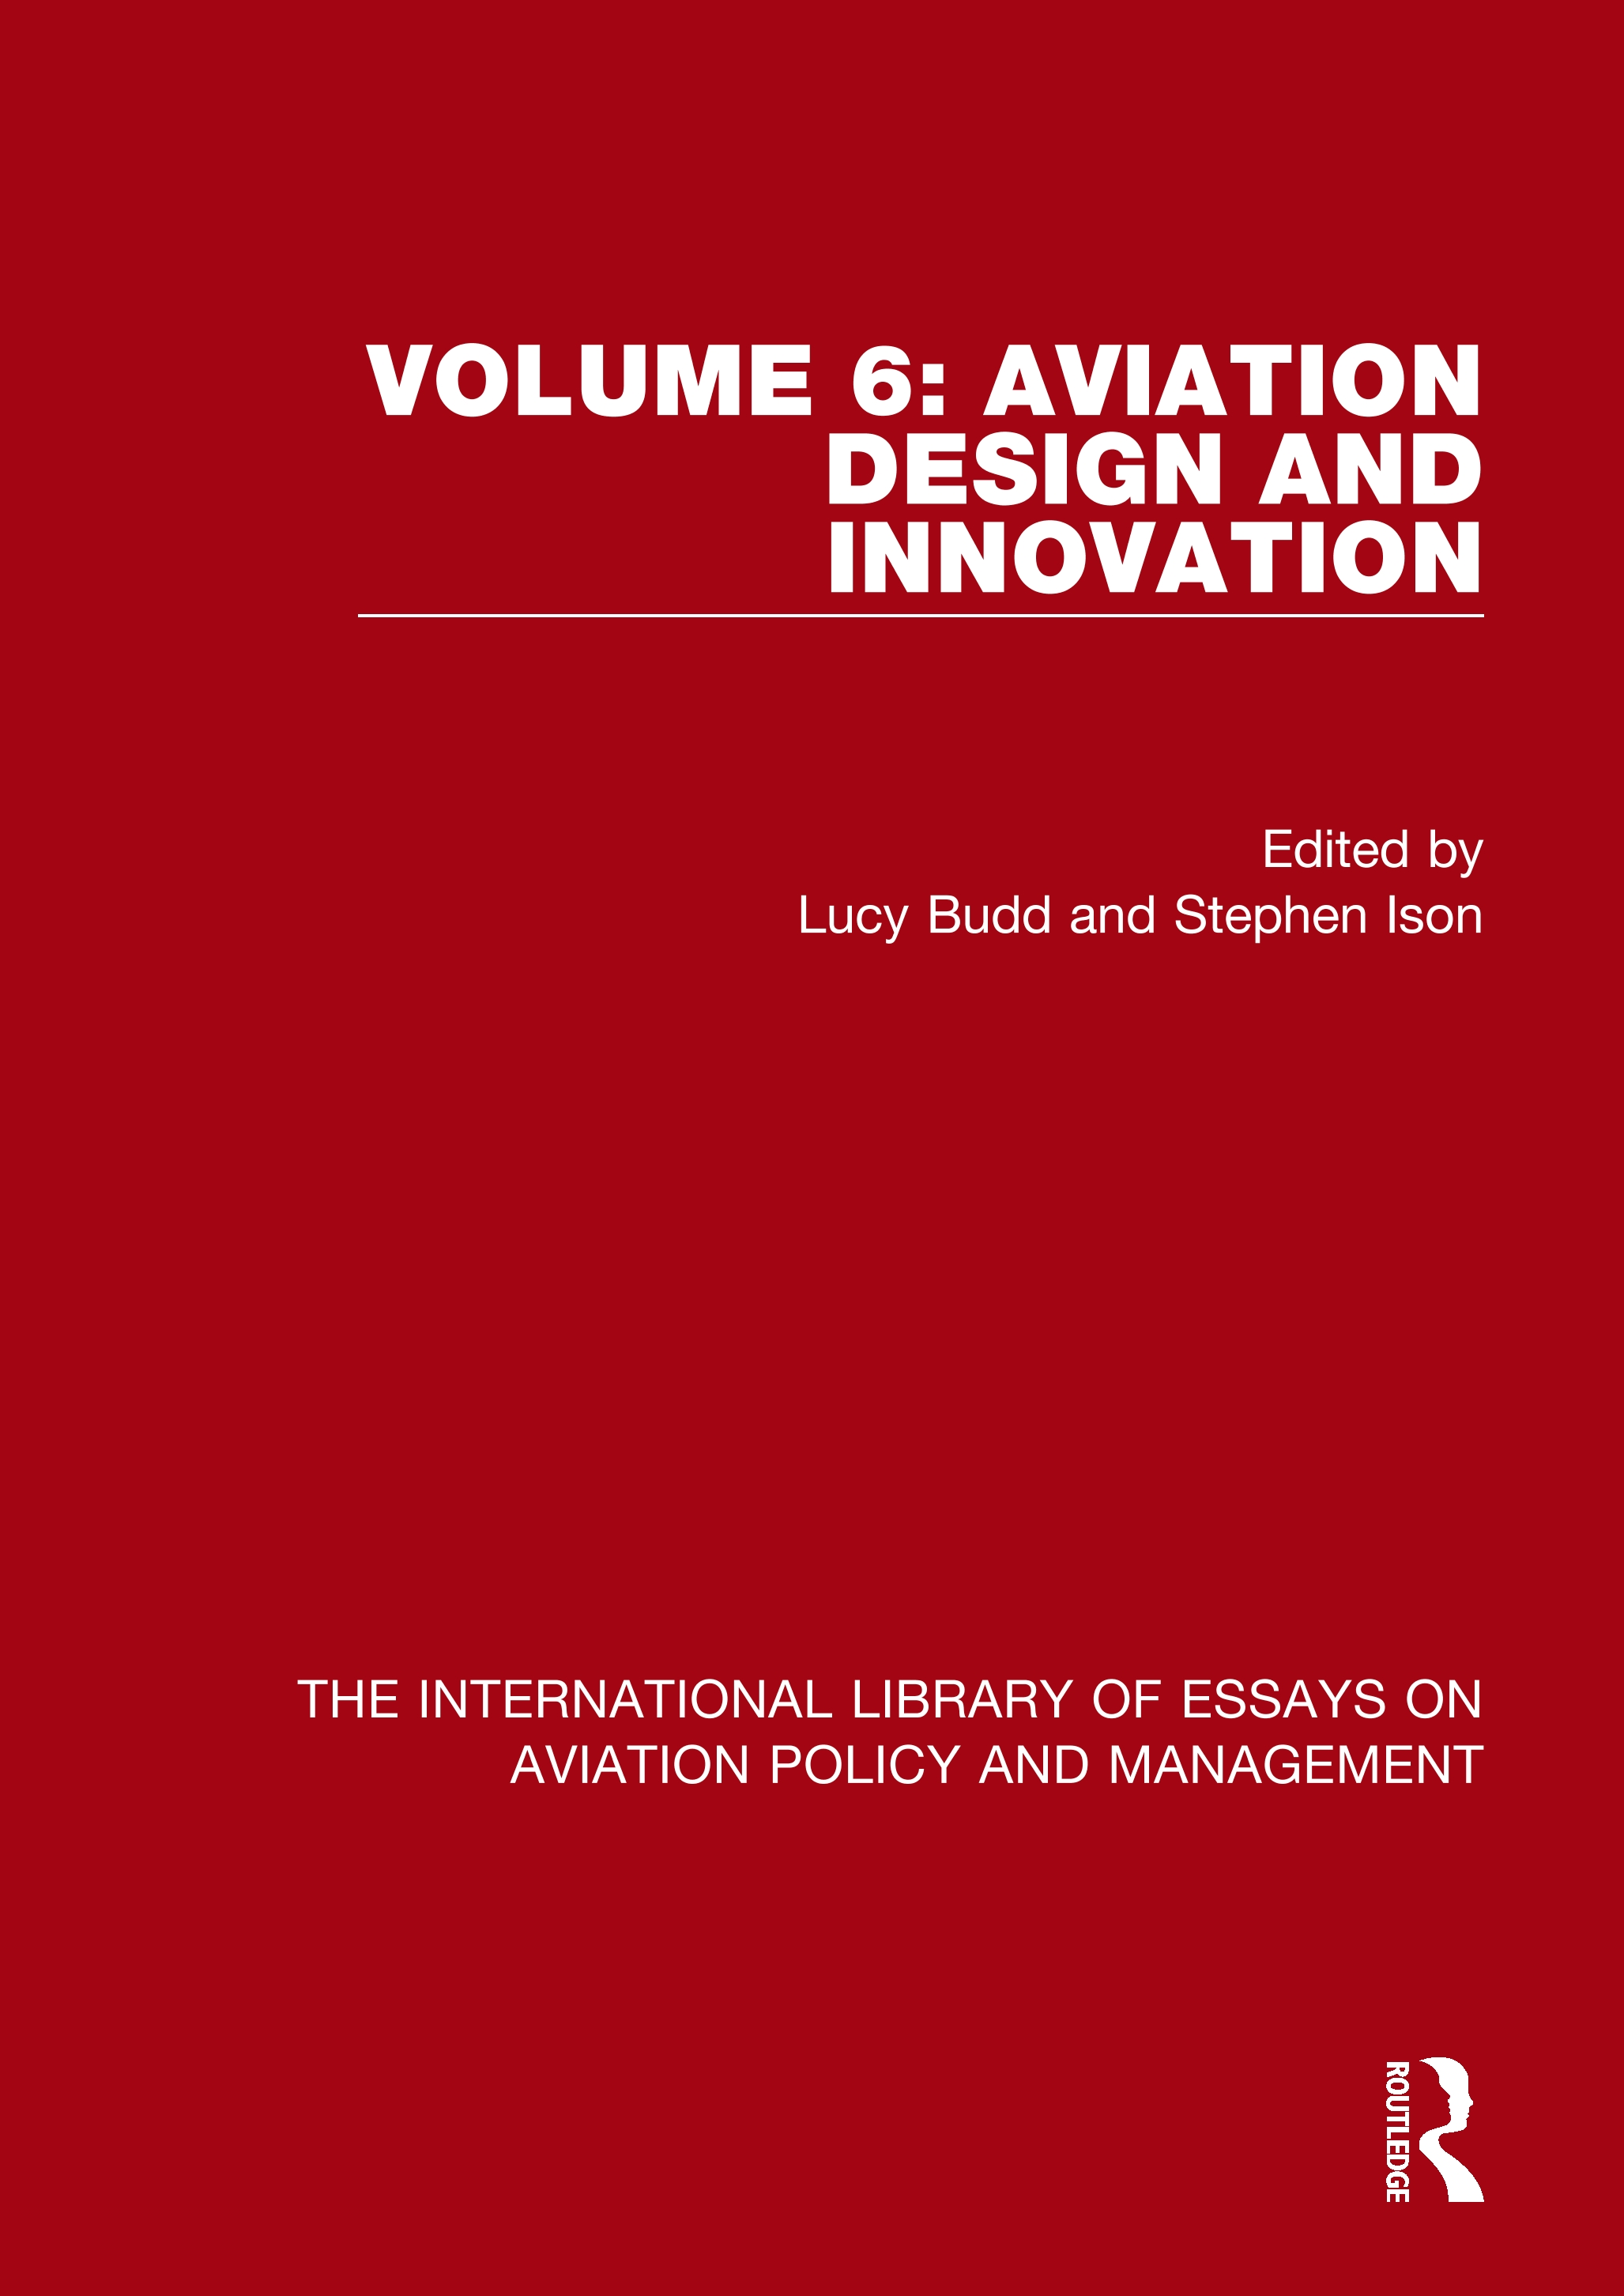 Aviation Design and Innovation book cover